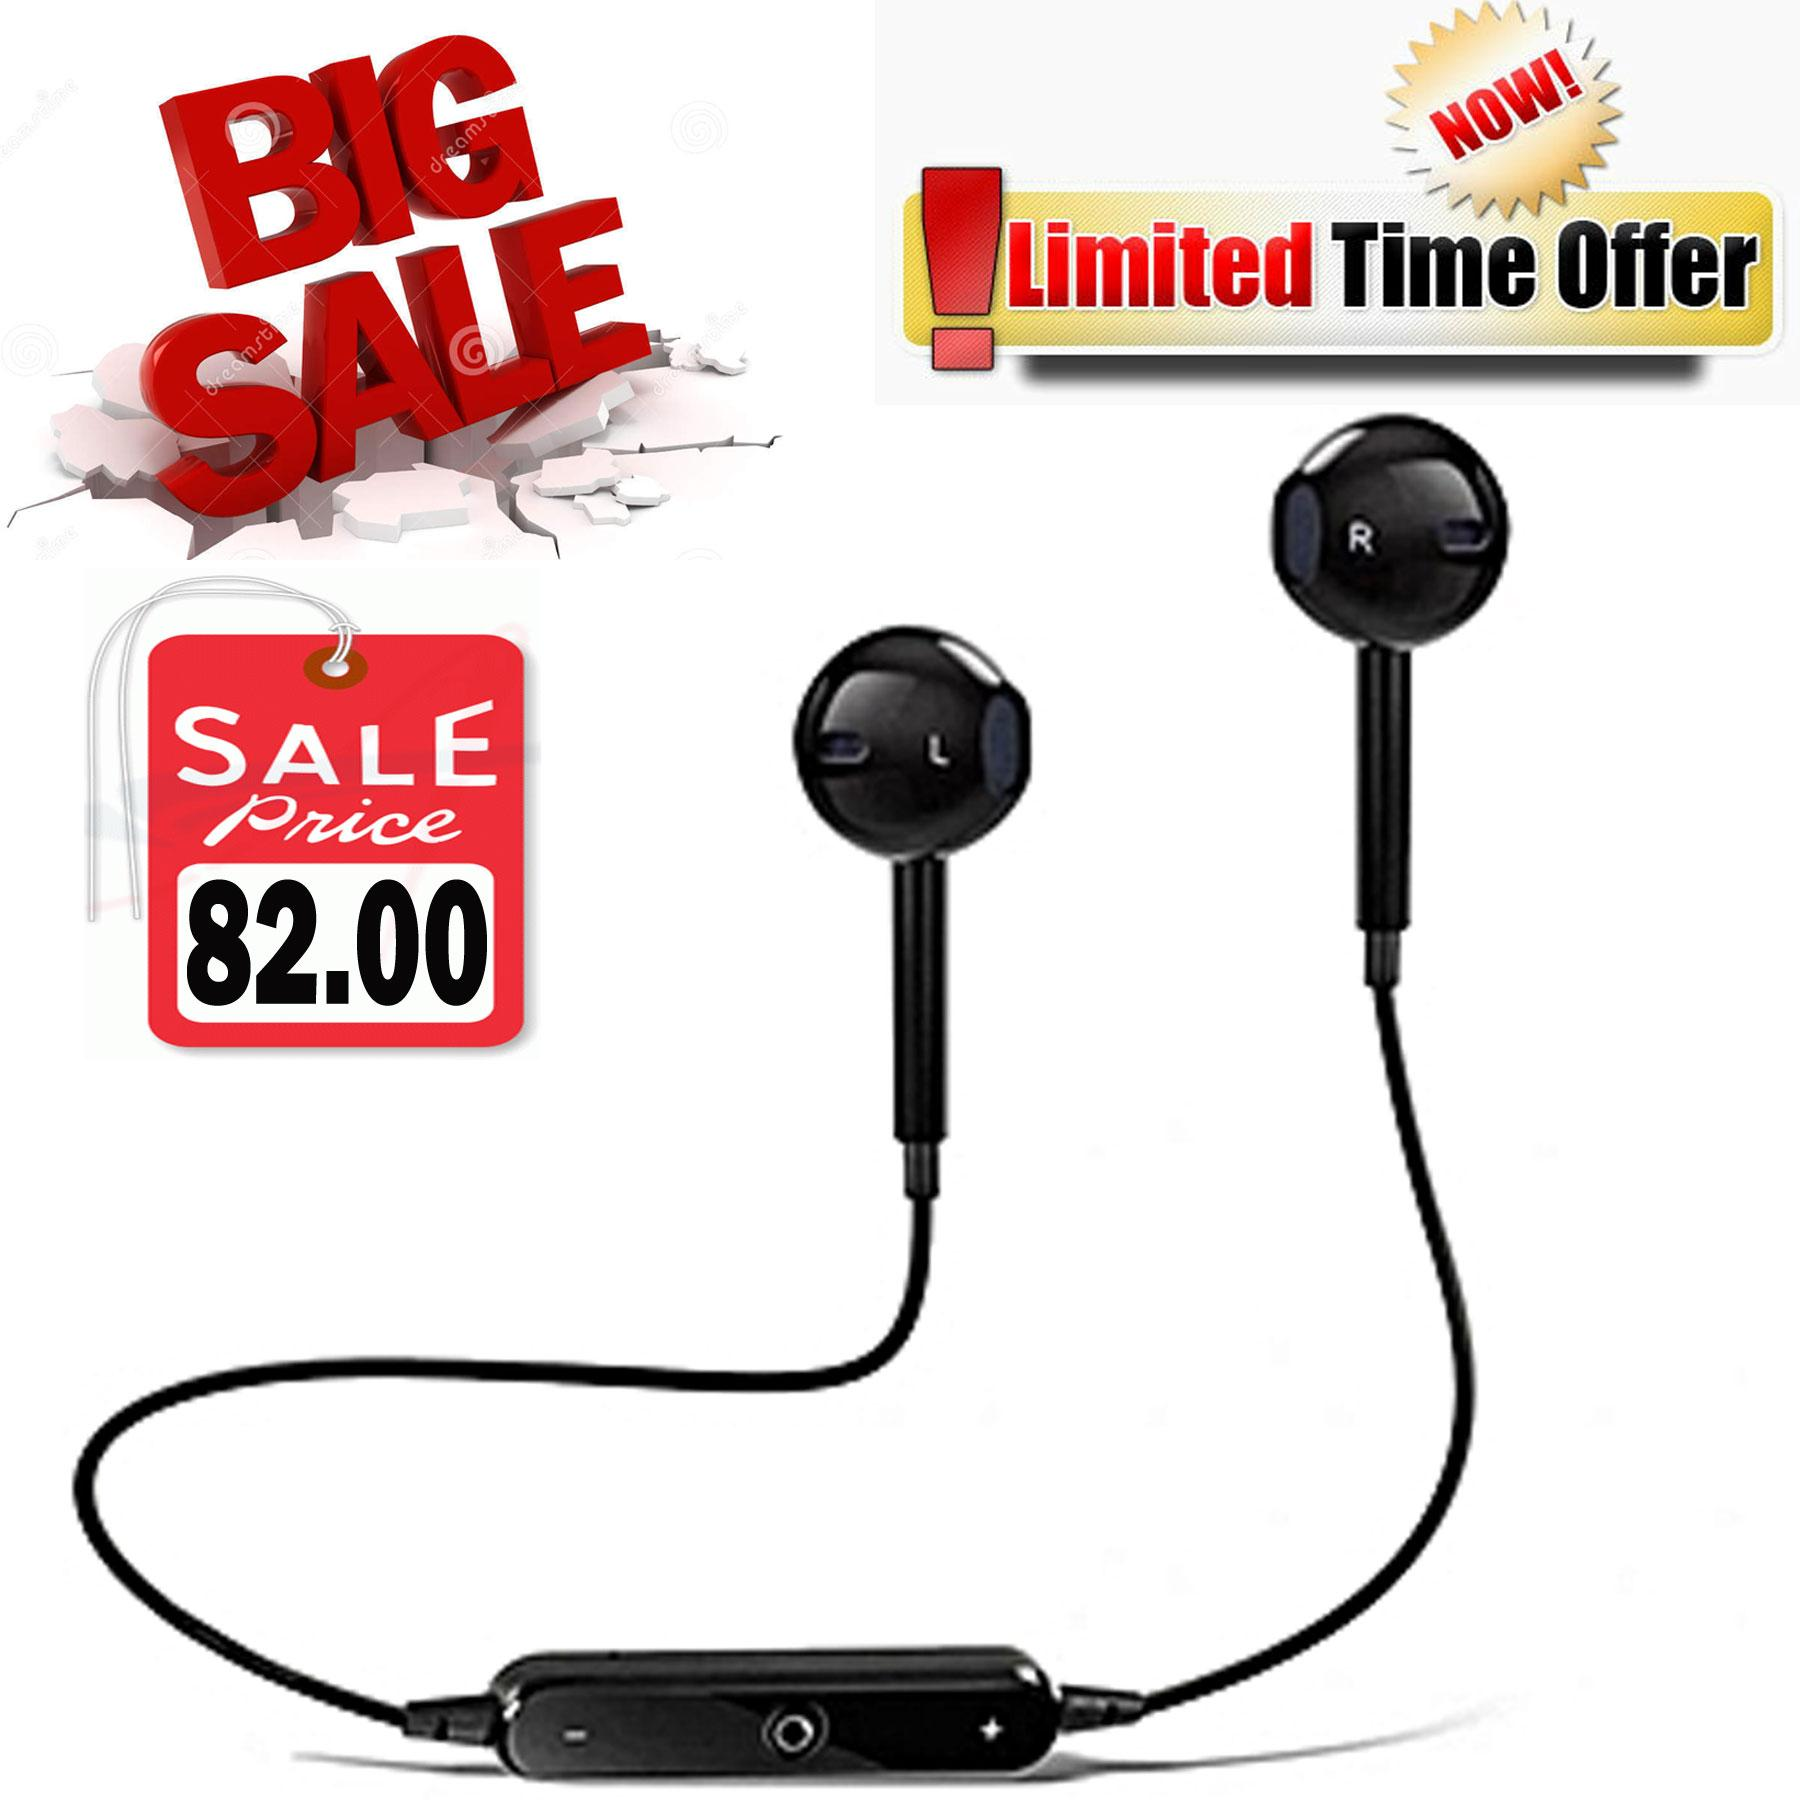 S6 4 1 Bluetooth Sport Wireless Headset BIG Sale (Black)